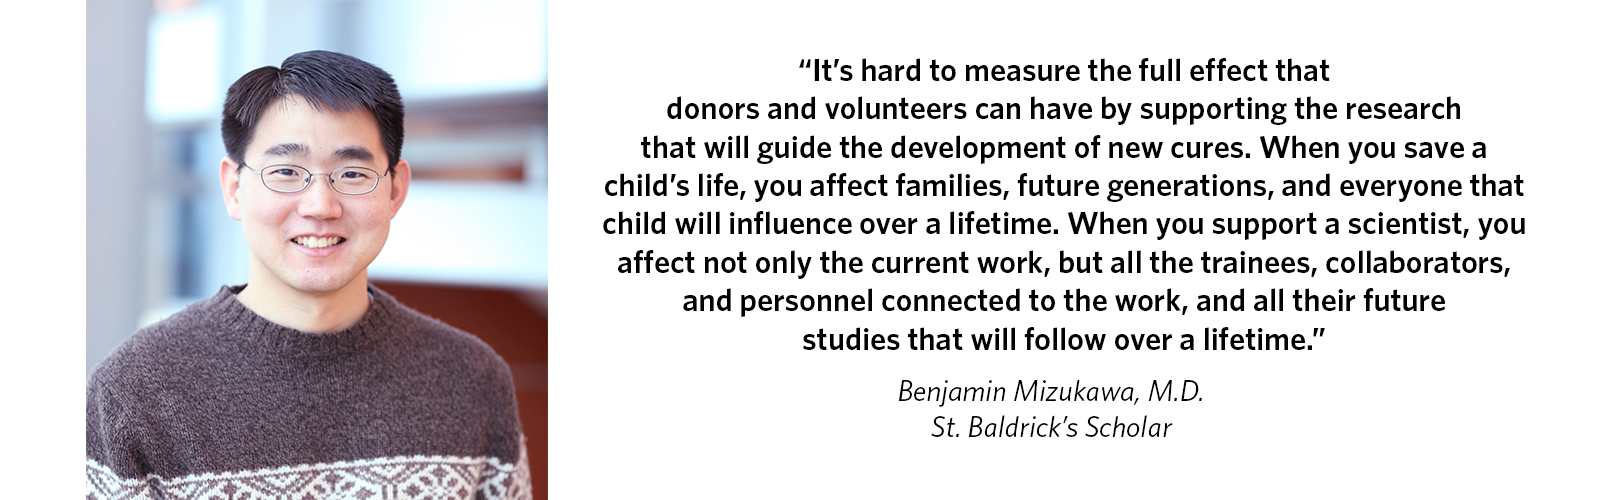 'It's hard to measure the full effect that donors and volunteers can have by supporting the research that will guide the development of new cures. When you save a child's life, you affect families, future generations, and everyone that child will influence over a lifetime. When you support a scientist, you affect not only the current work, but all the trainees, collaborators, and personnel connected to the work, and all their future studies that will follow over a lifetime.' Benjamin Mizukawa, M.D., St. Baldrick's Scholar